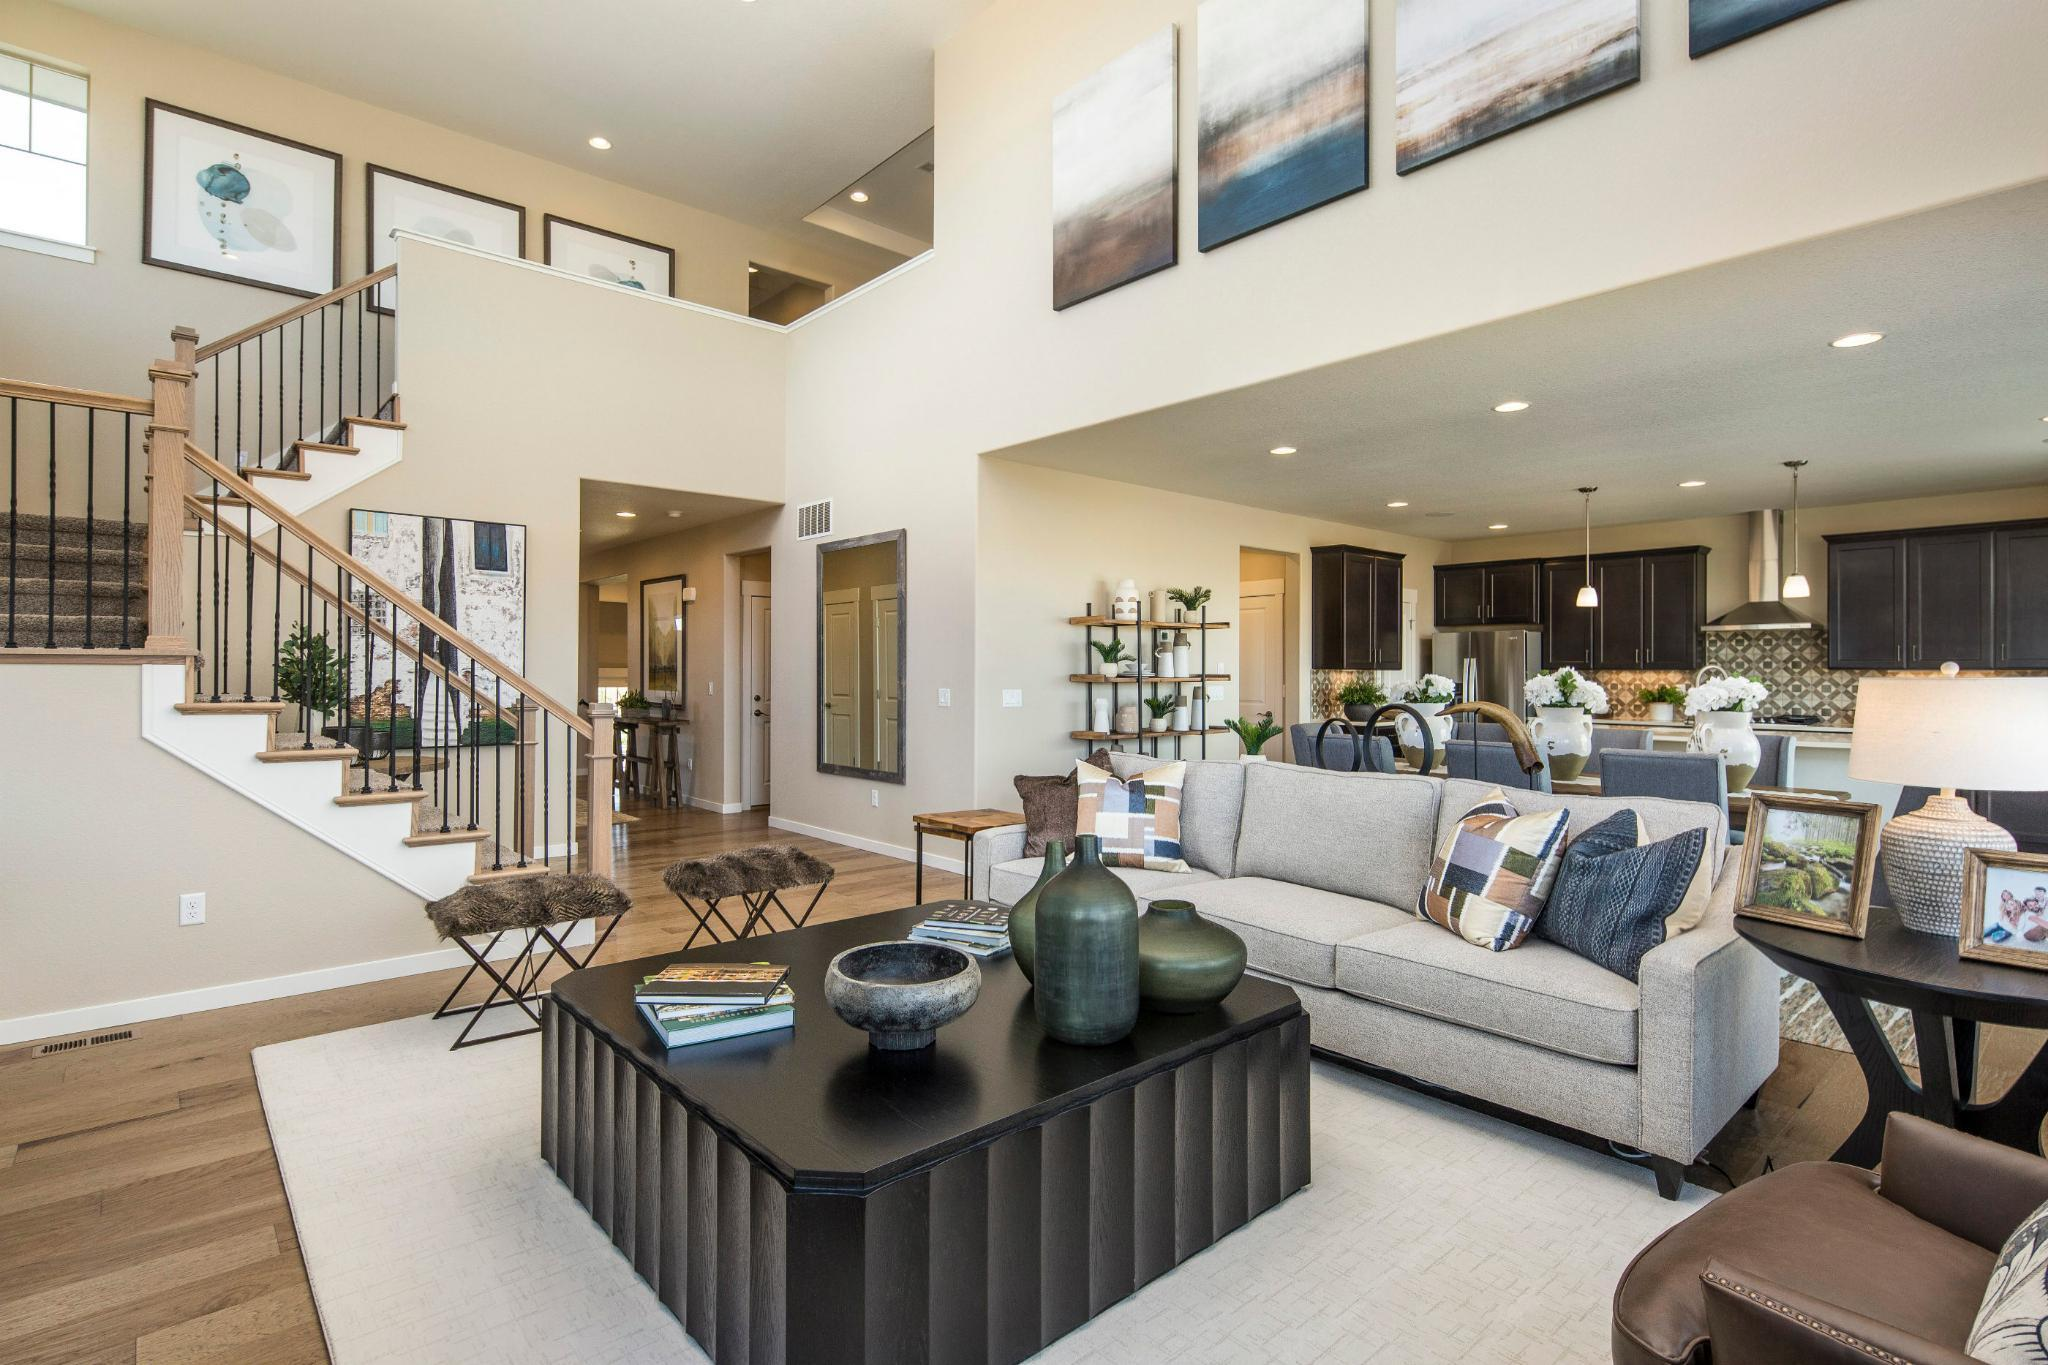 Living Area featured in the Plan C407 By American Legend Homes in Greeley, CO